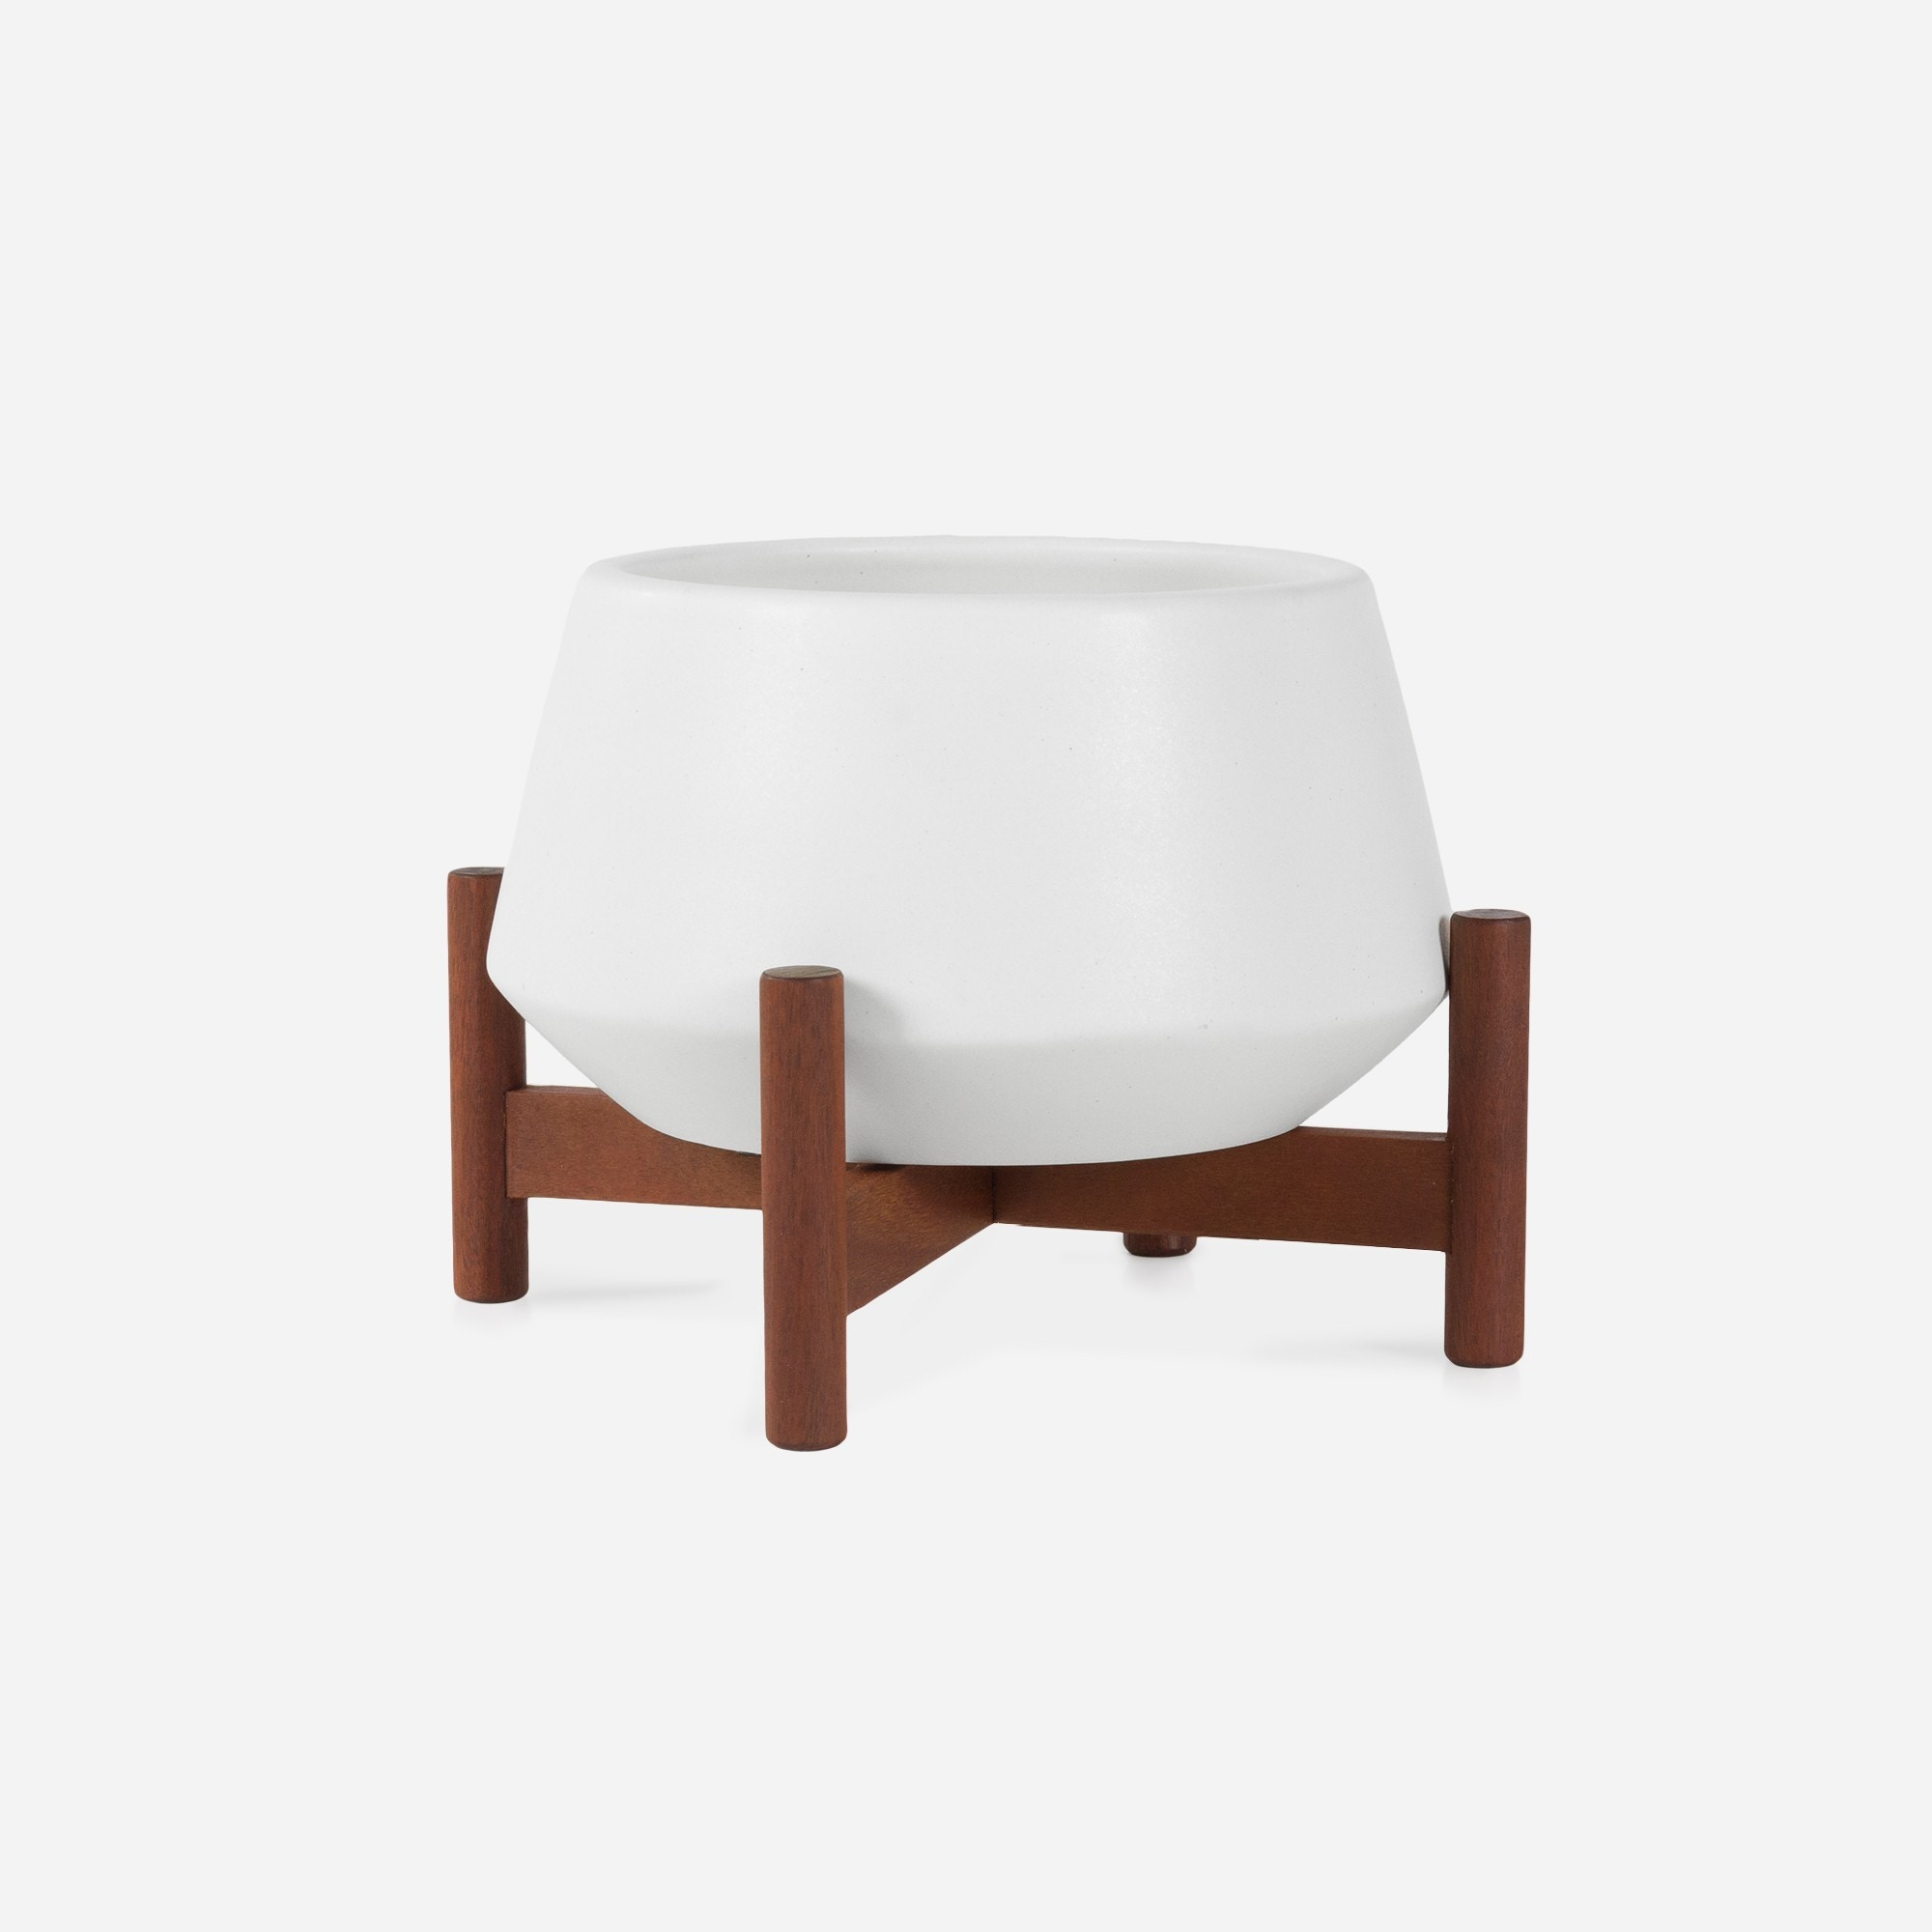 Modernica Case Study® Ceramics Table Top Diamond With Wood Stand